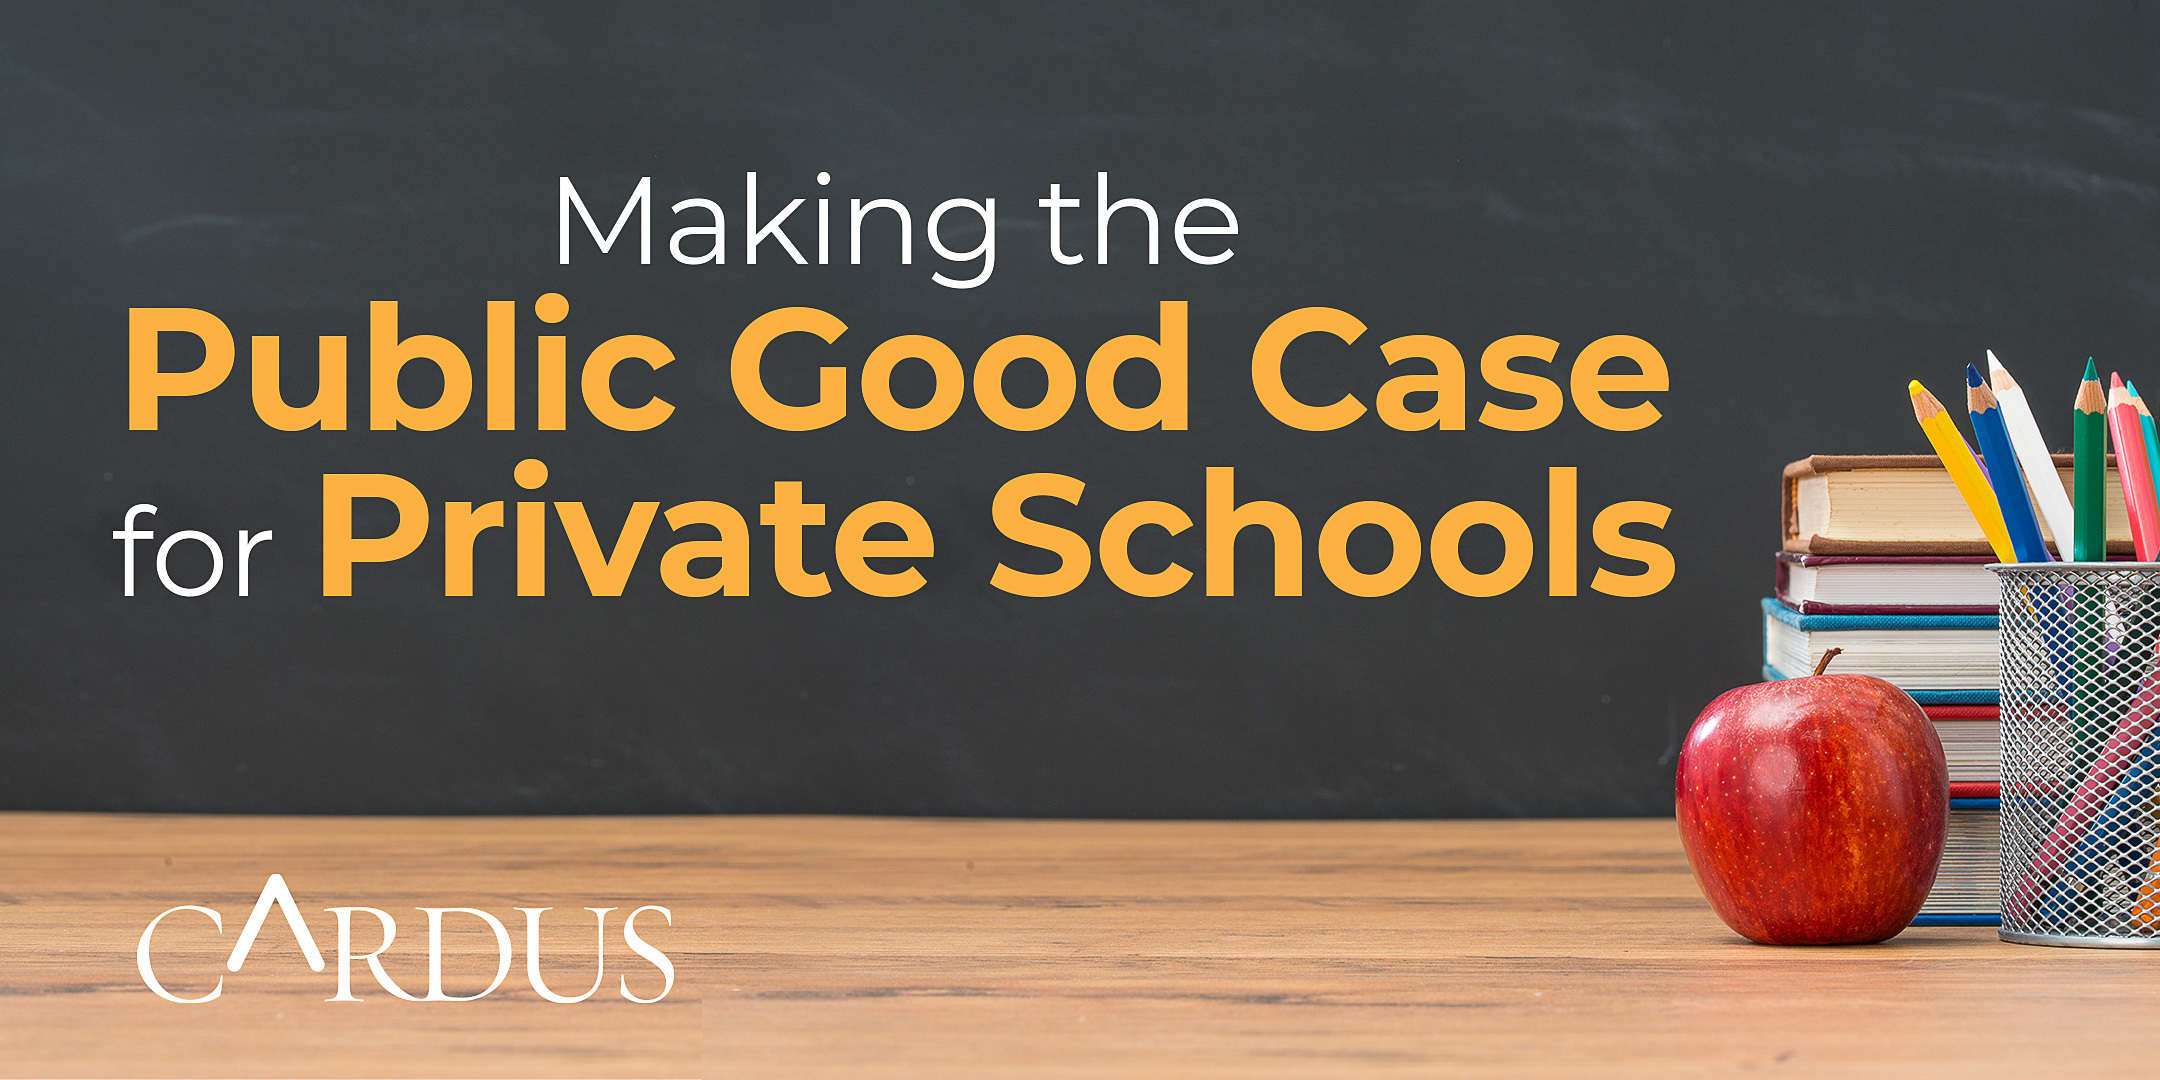 Making the Public Good Case for Private Schools